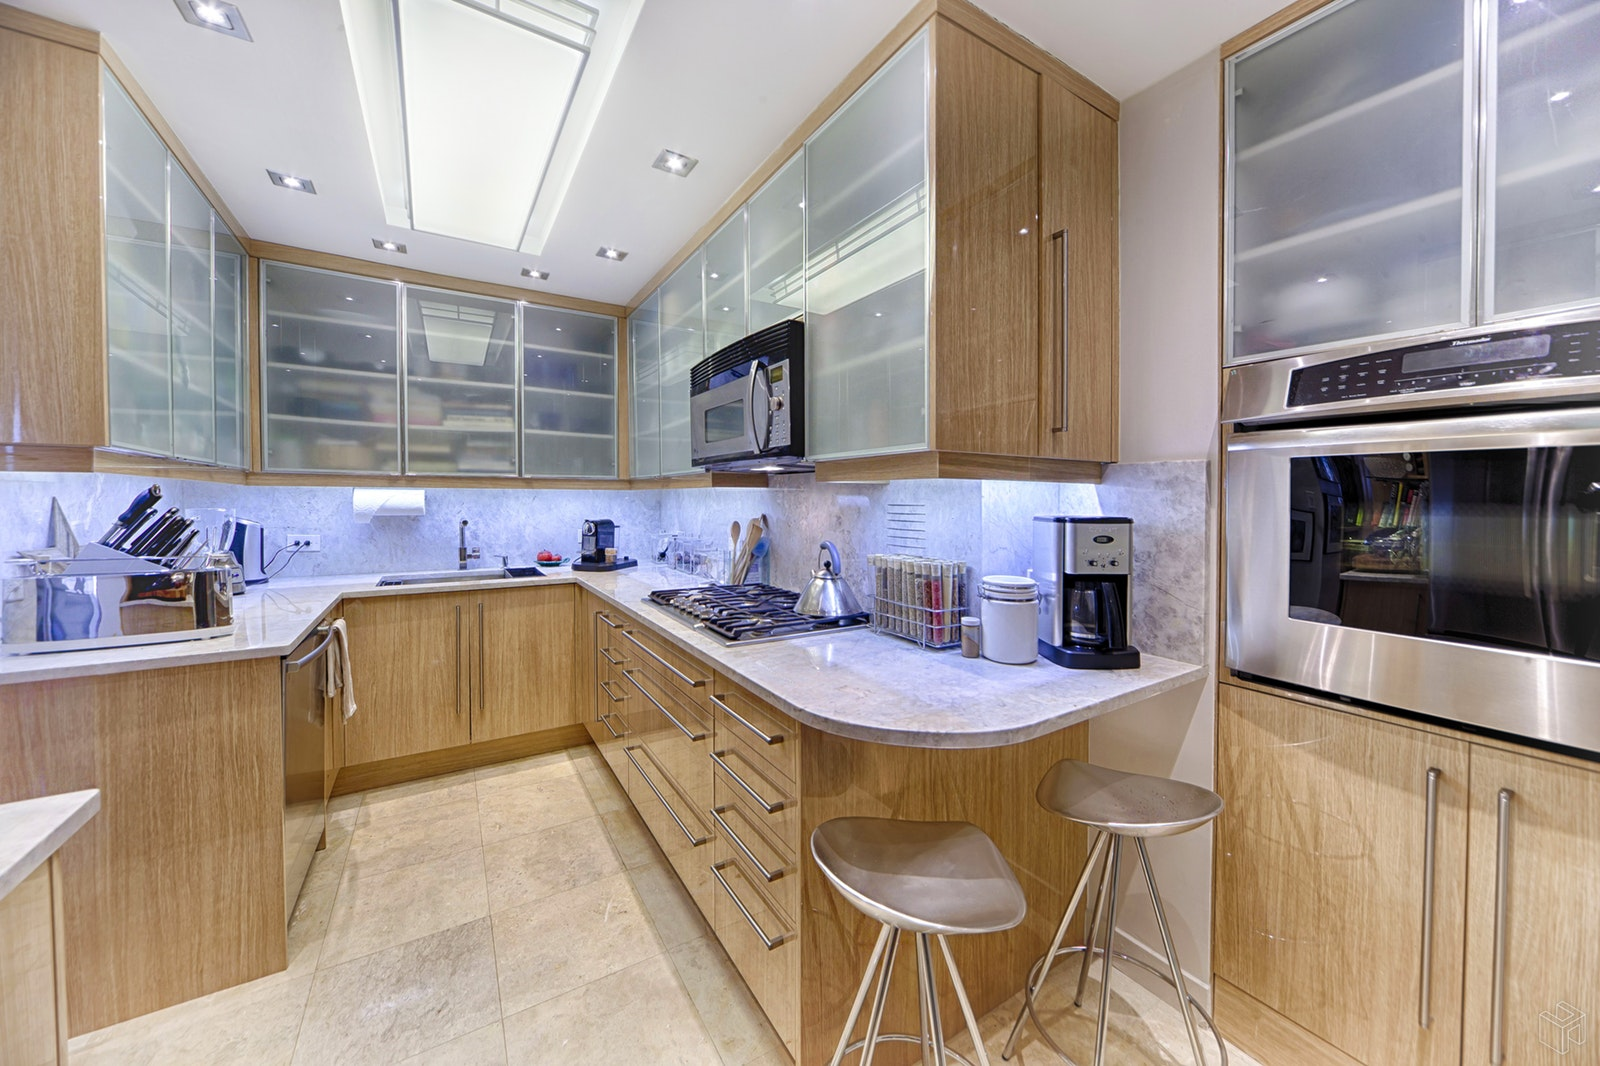 303 East 57th Street 40f, Midtown East, NYC, 10022, $1,100,000, Sold Property, Halstead Real Estate, Photo 3